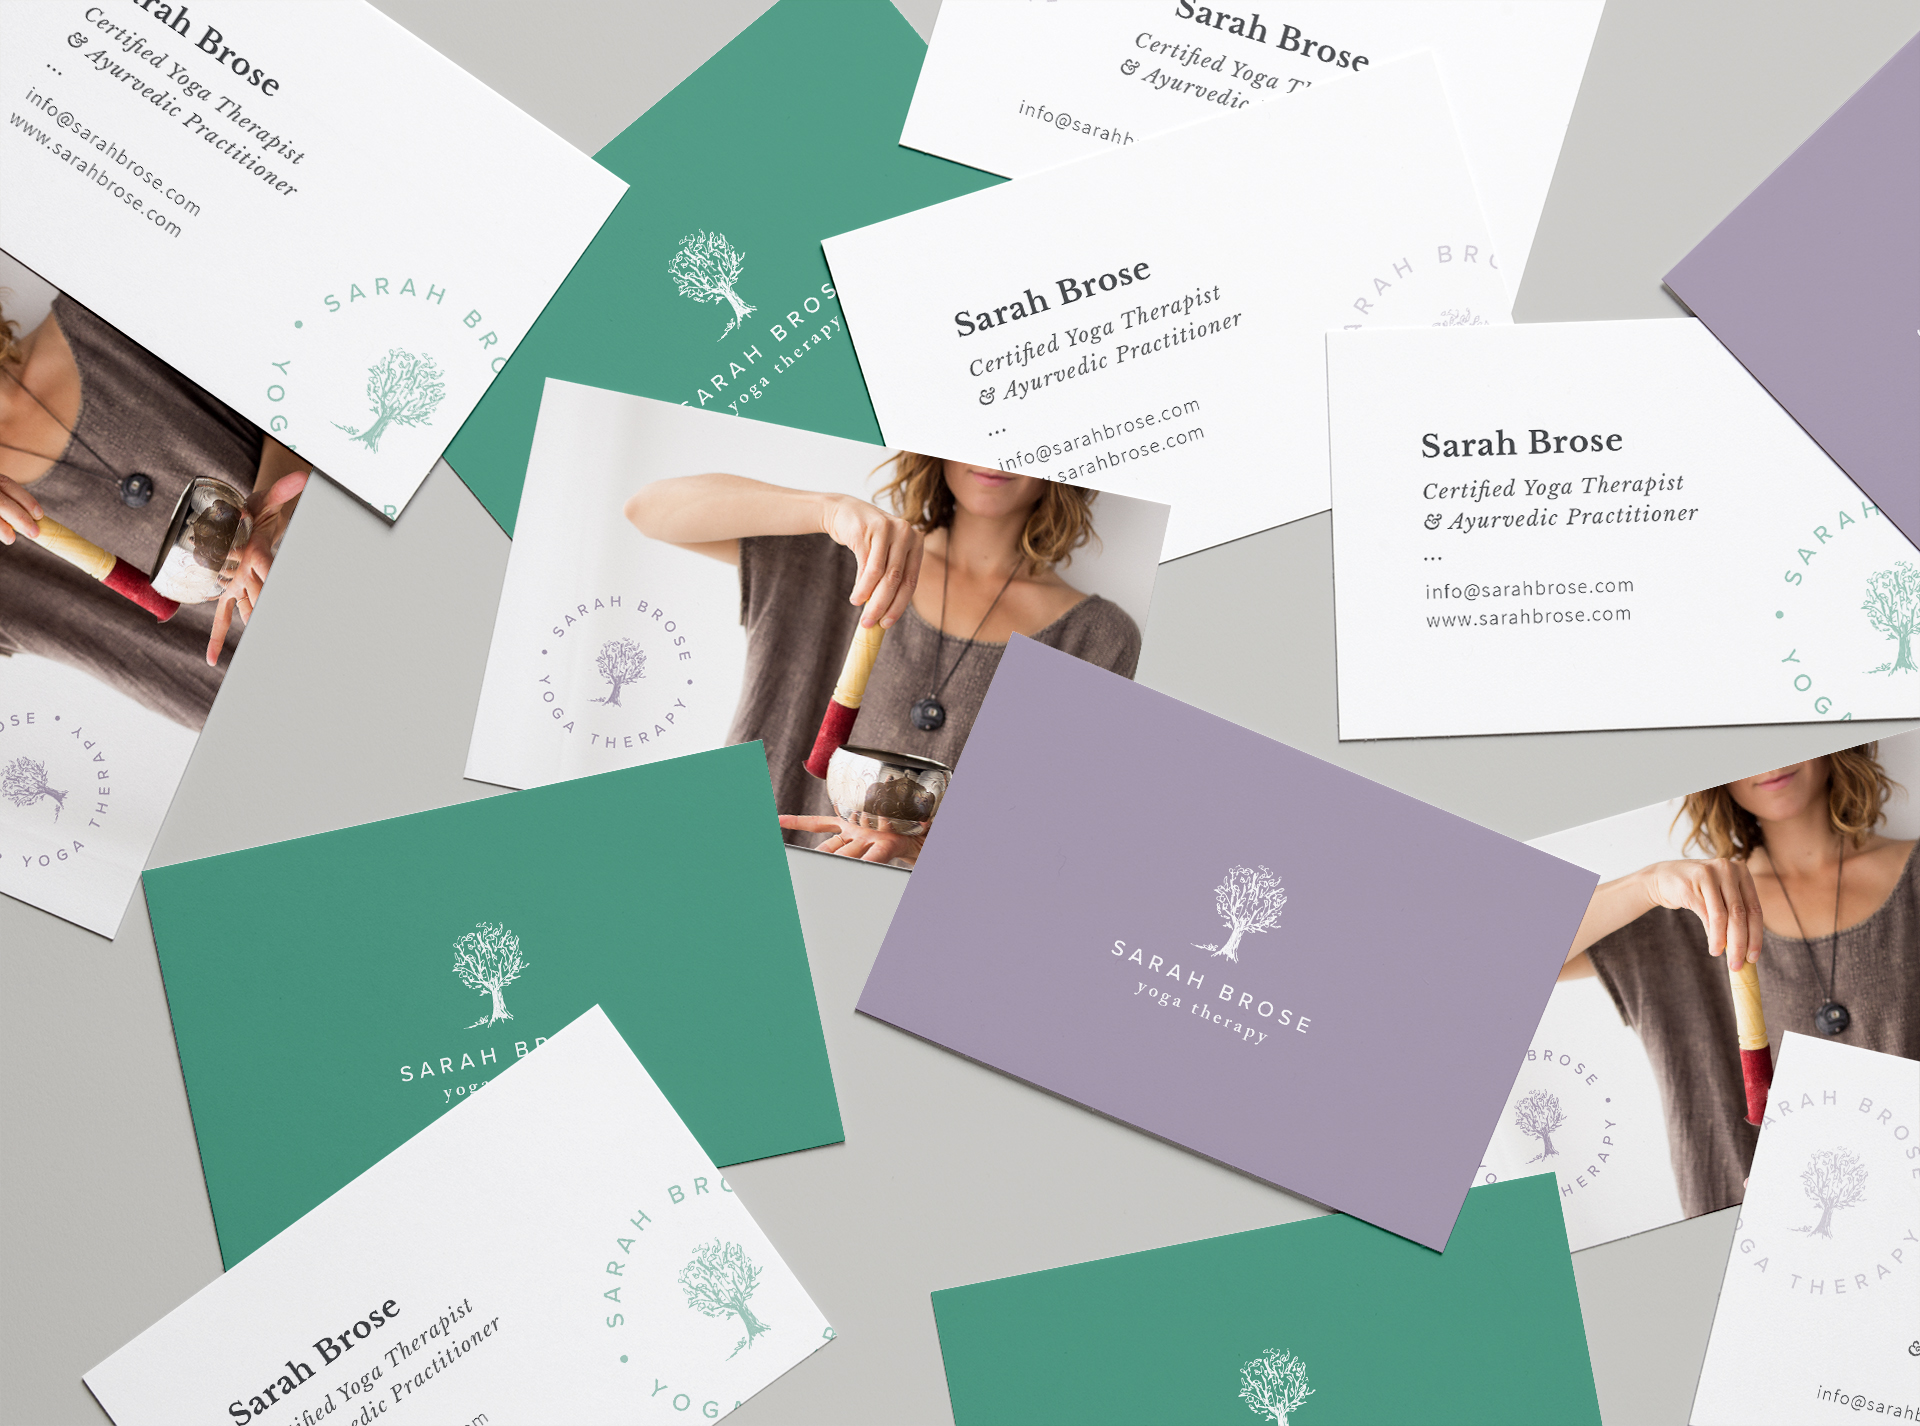 sarah brose yoga therapy business card design